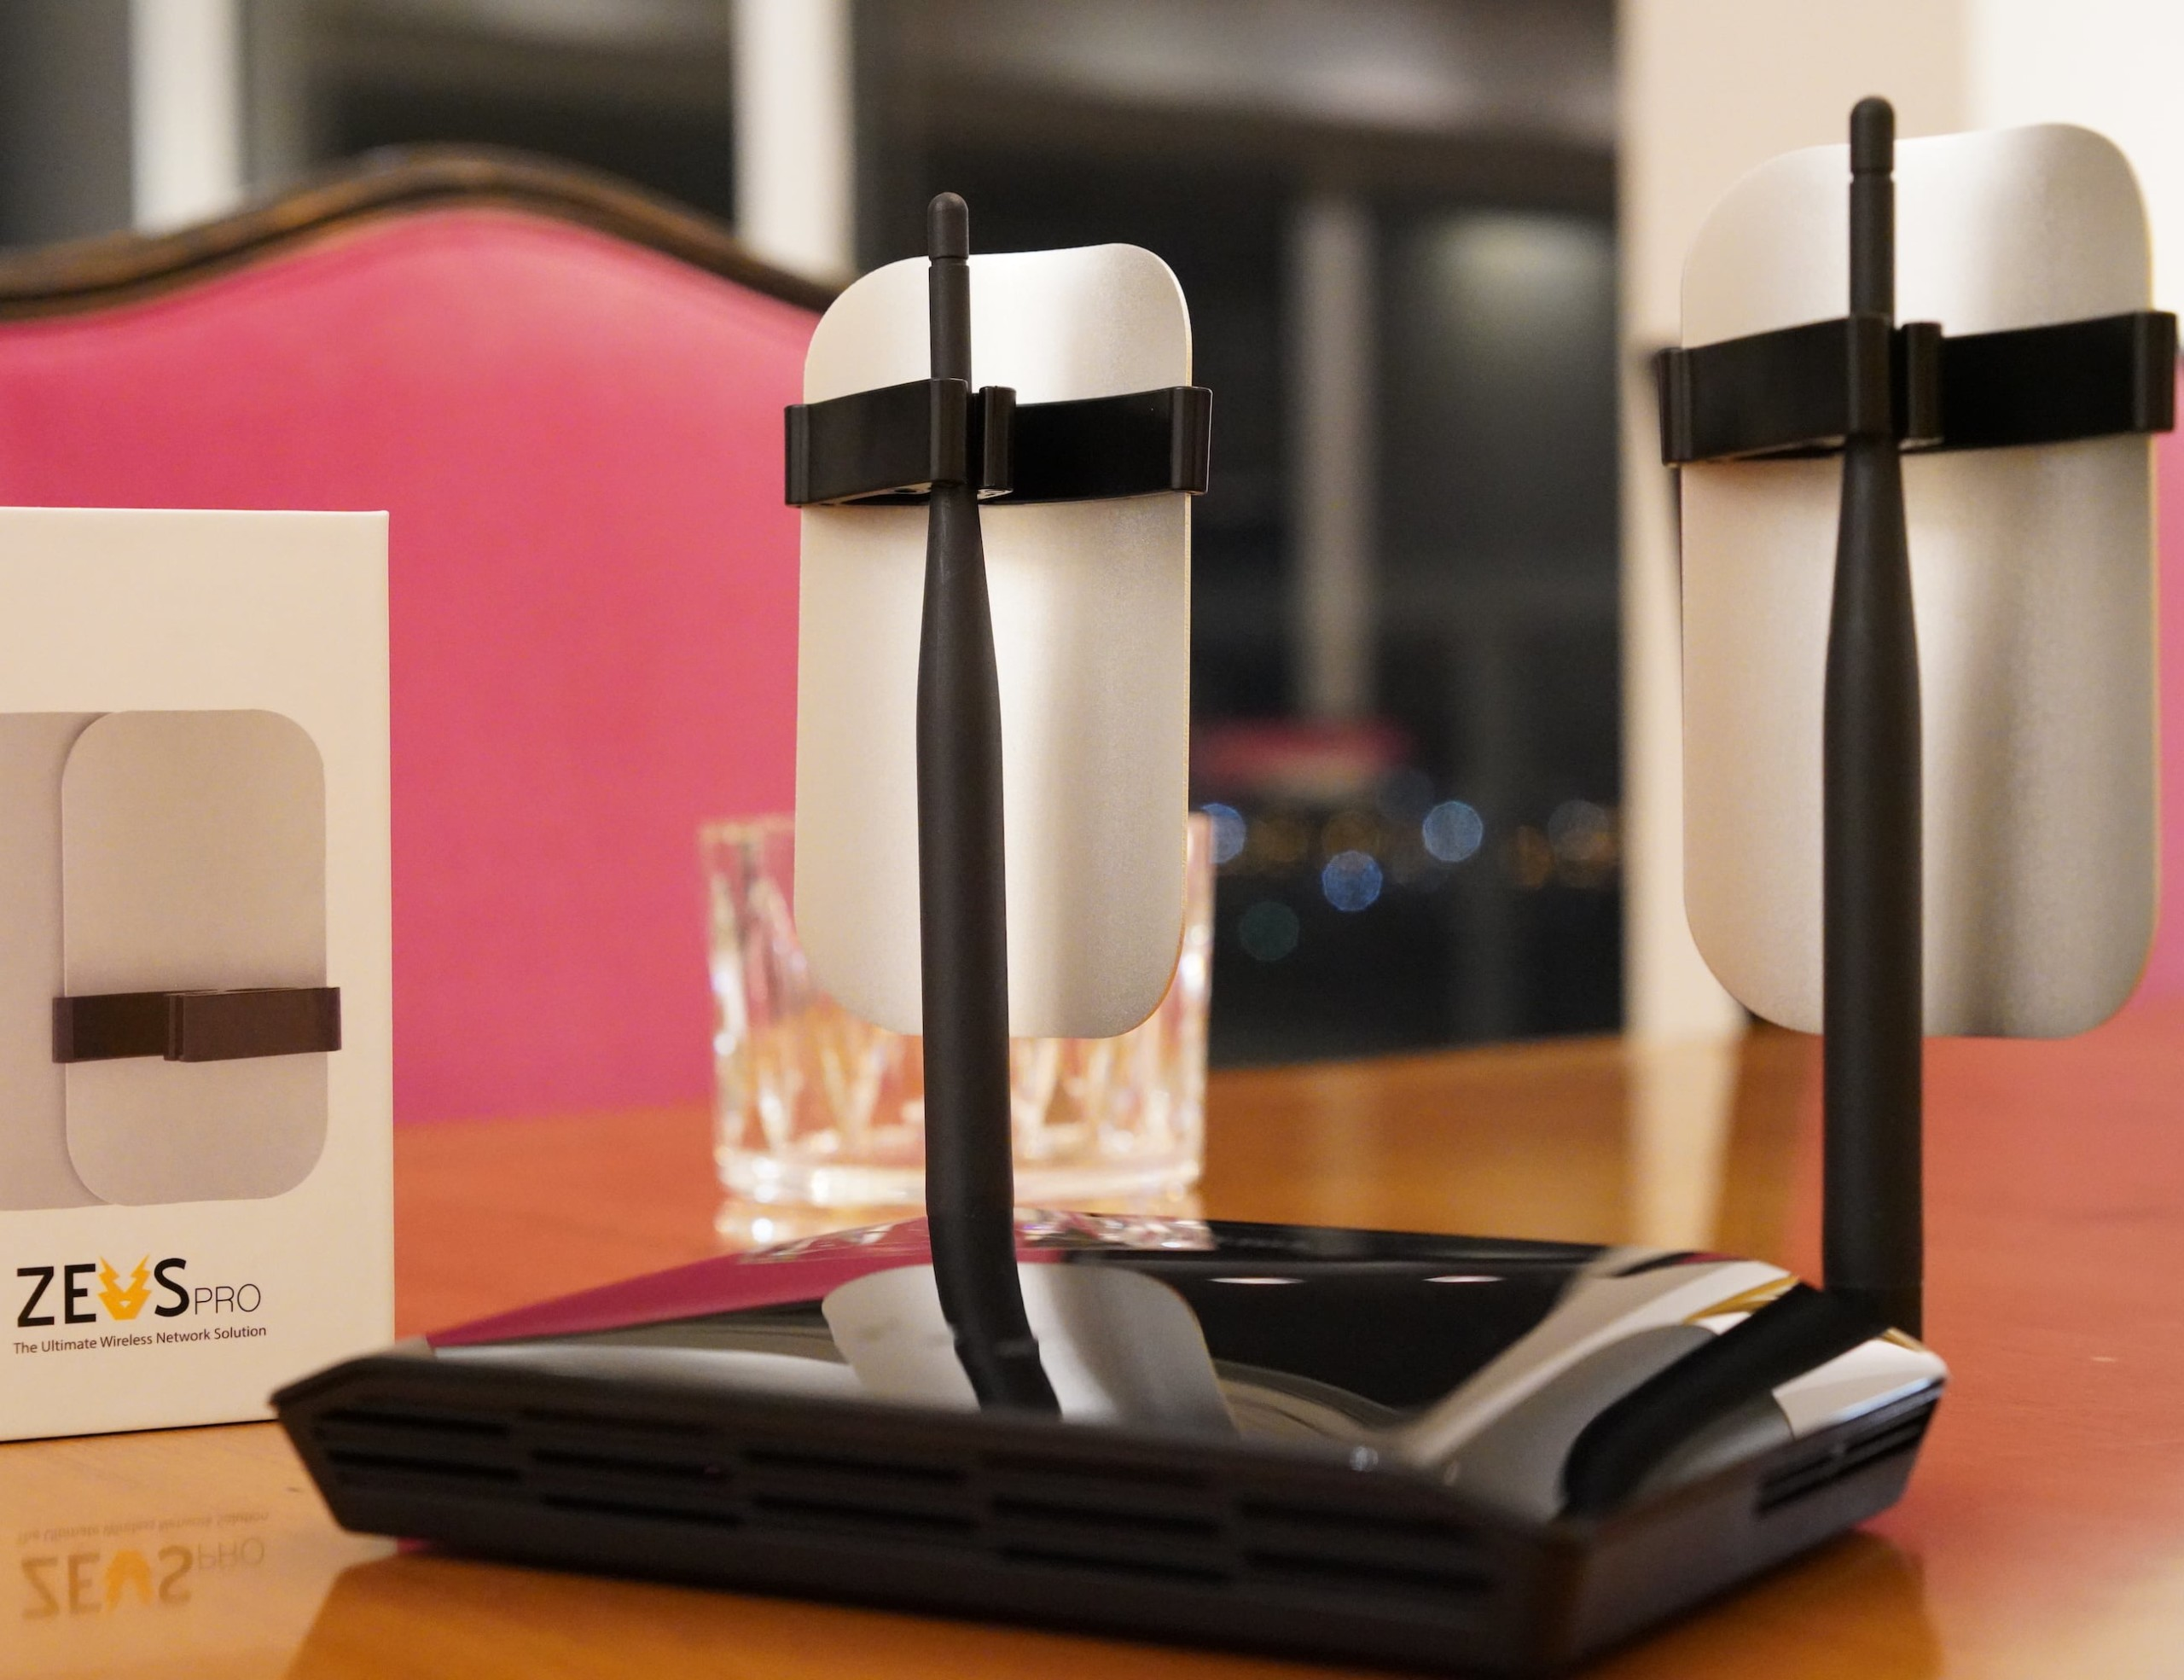 ZeusPro Non-Electrical Wi-Fi Amplifier improves your internet quality